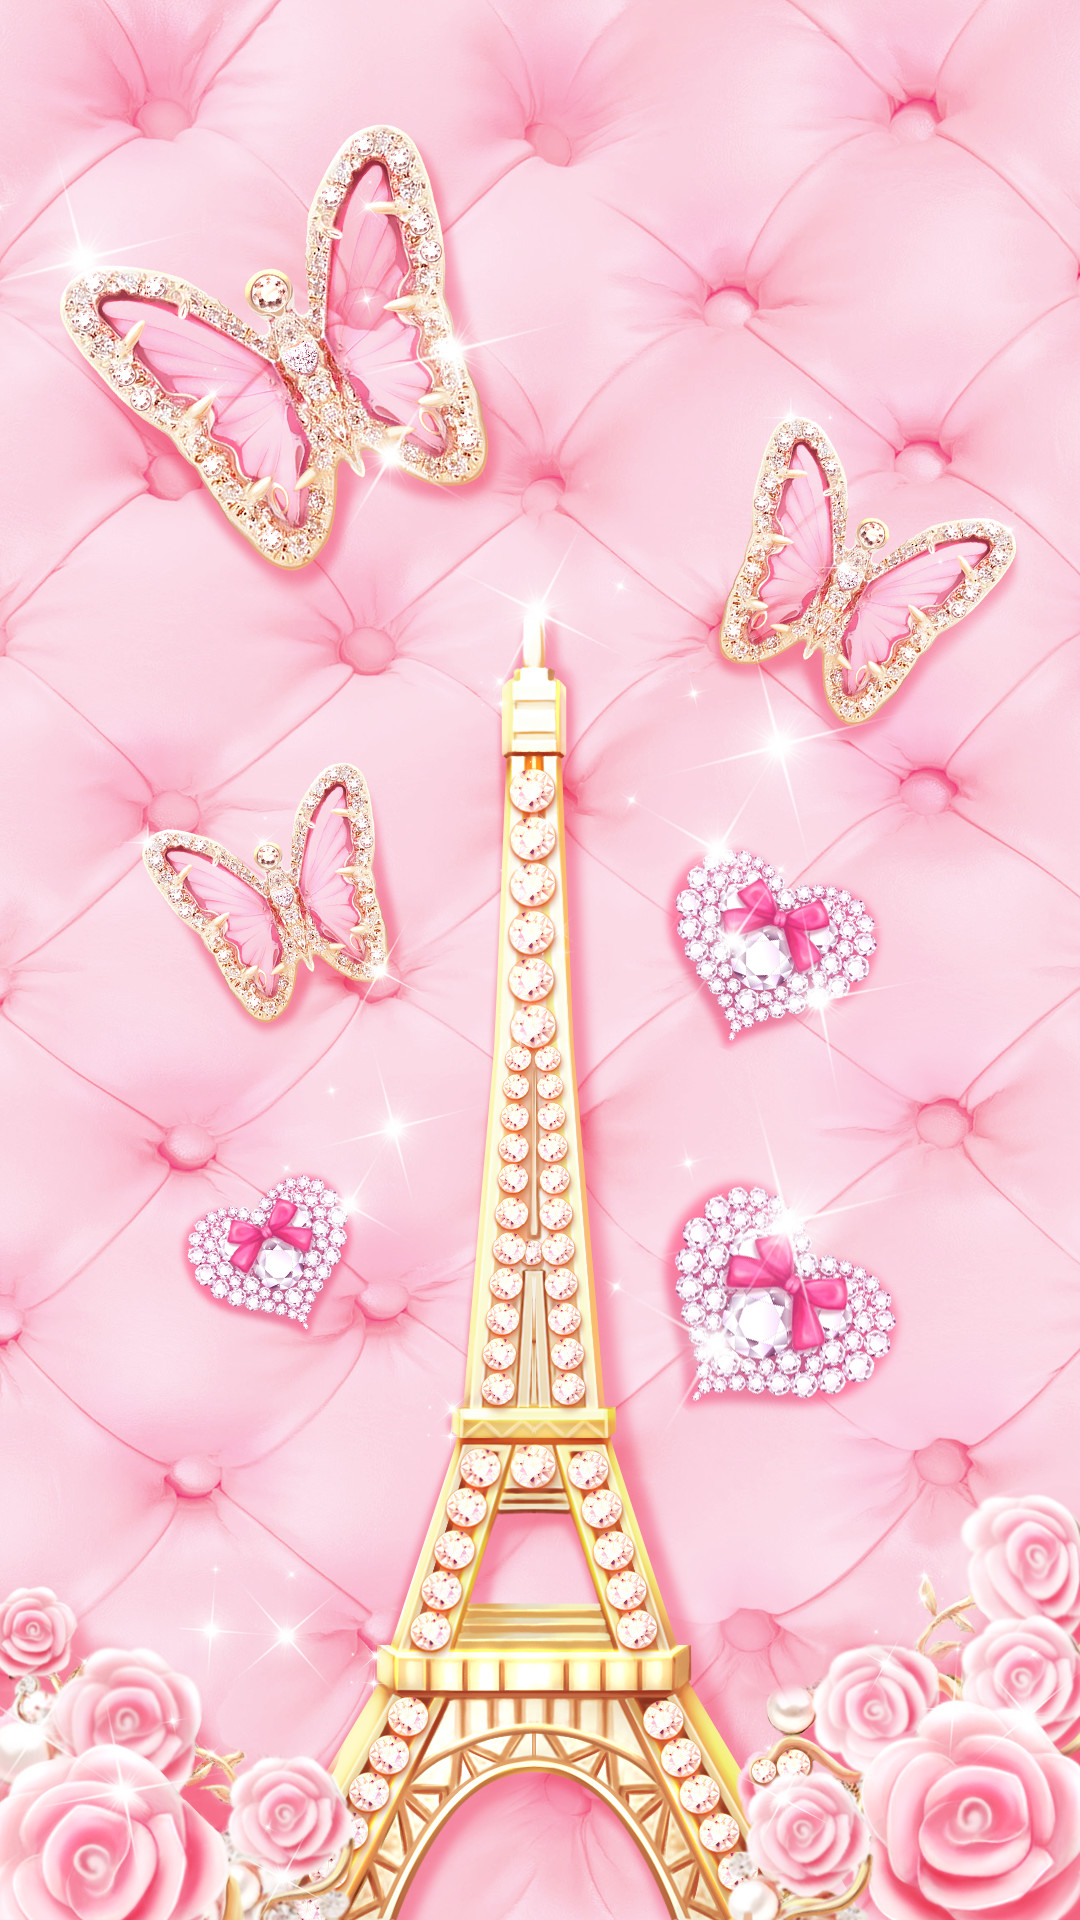 Rose Gold Girly Cute Eiffel Tower Wallpaper